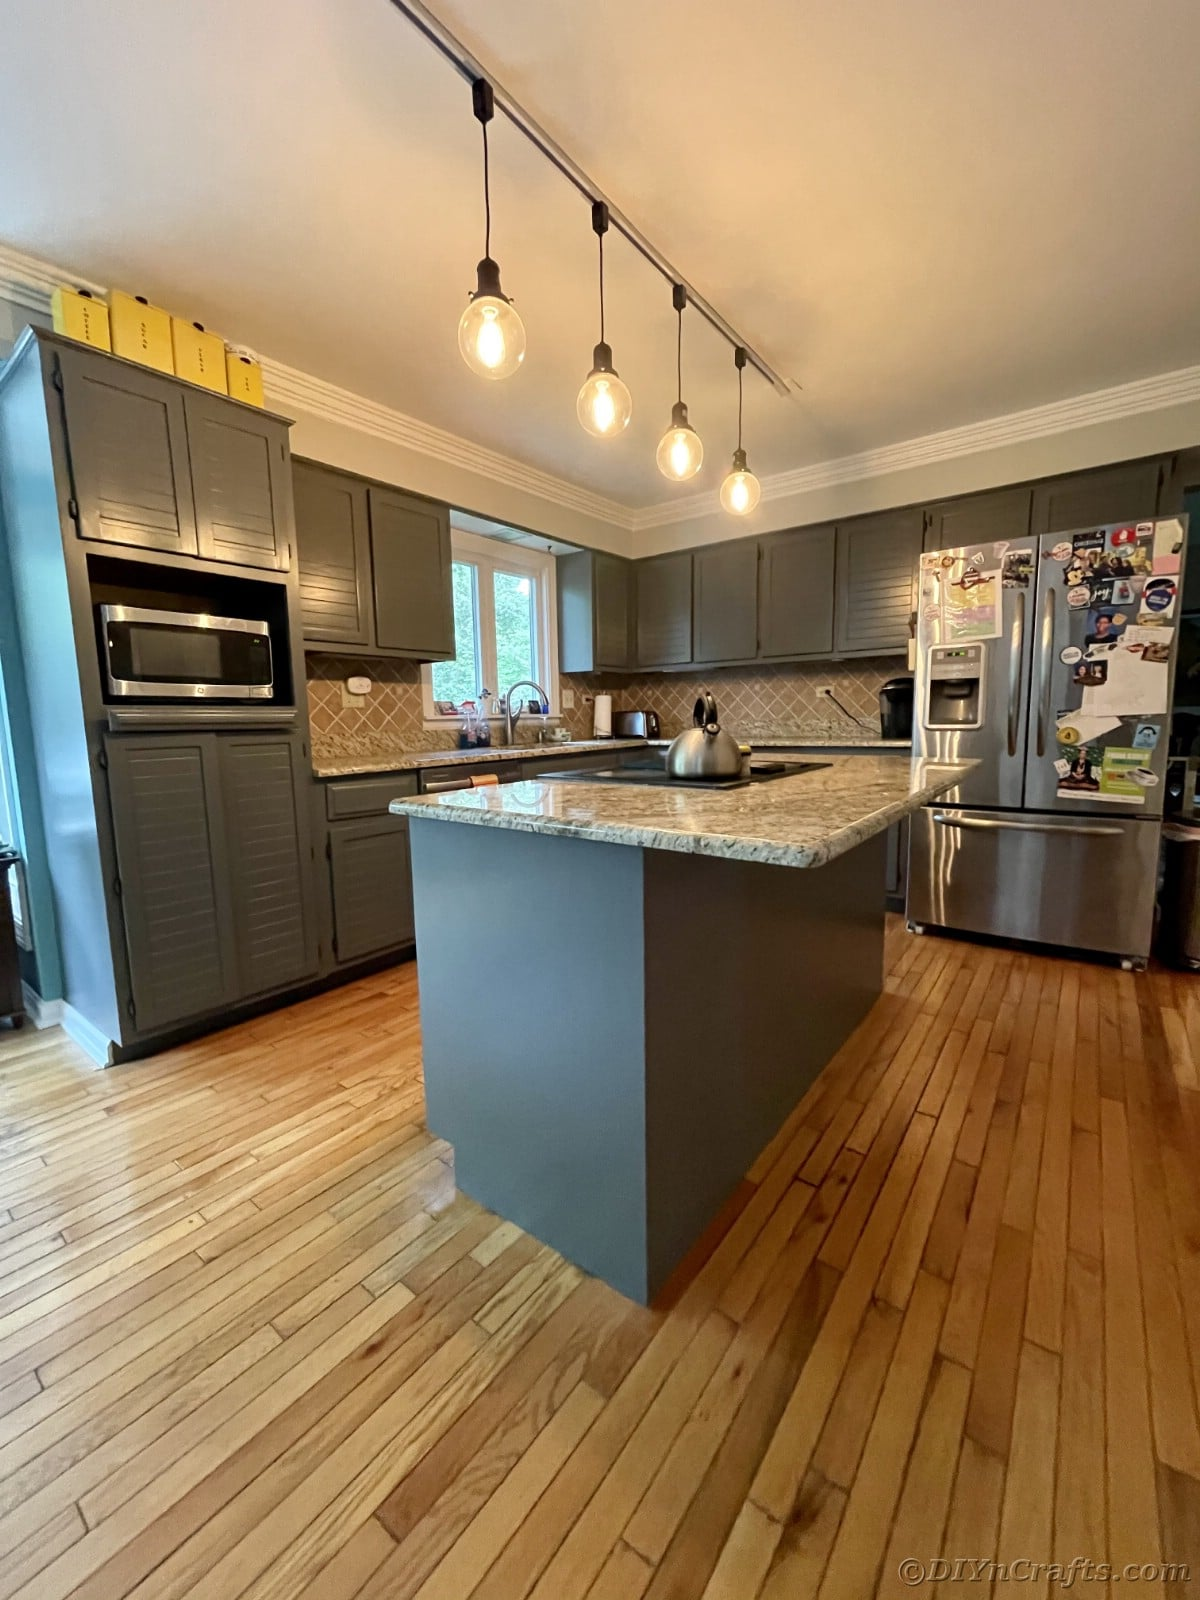 Kitchen with gray cabinets and dangling lights over island